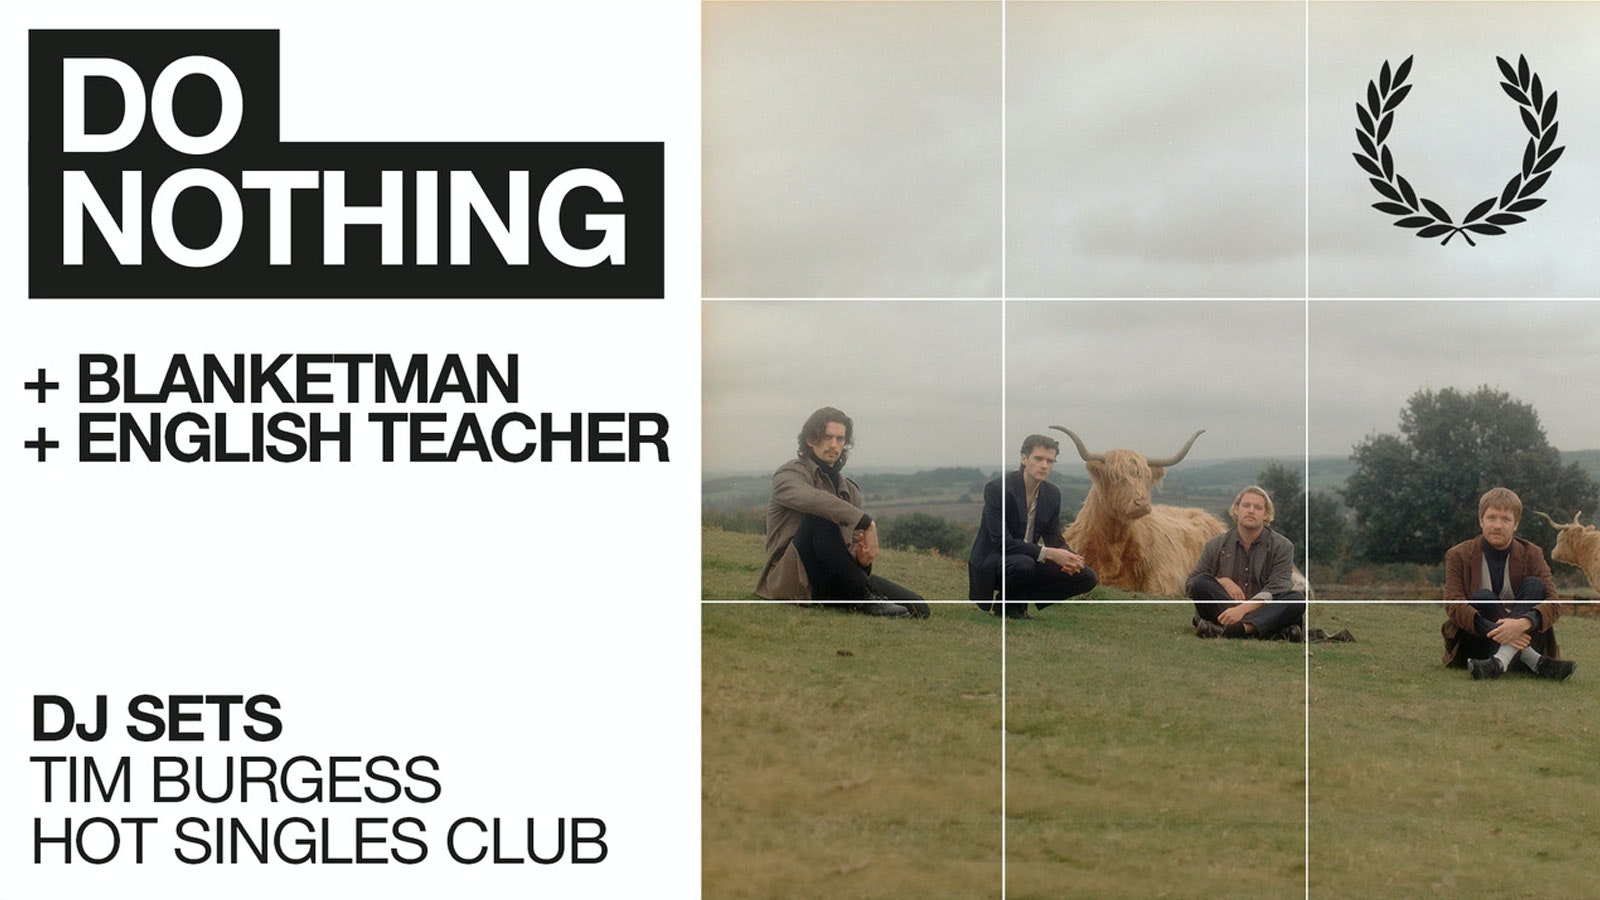 Fred Perry Subculture presents: Do Nothing